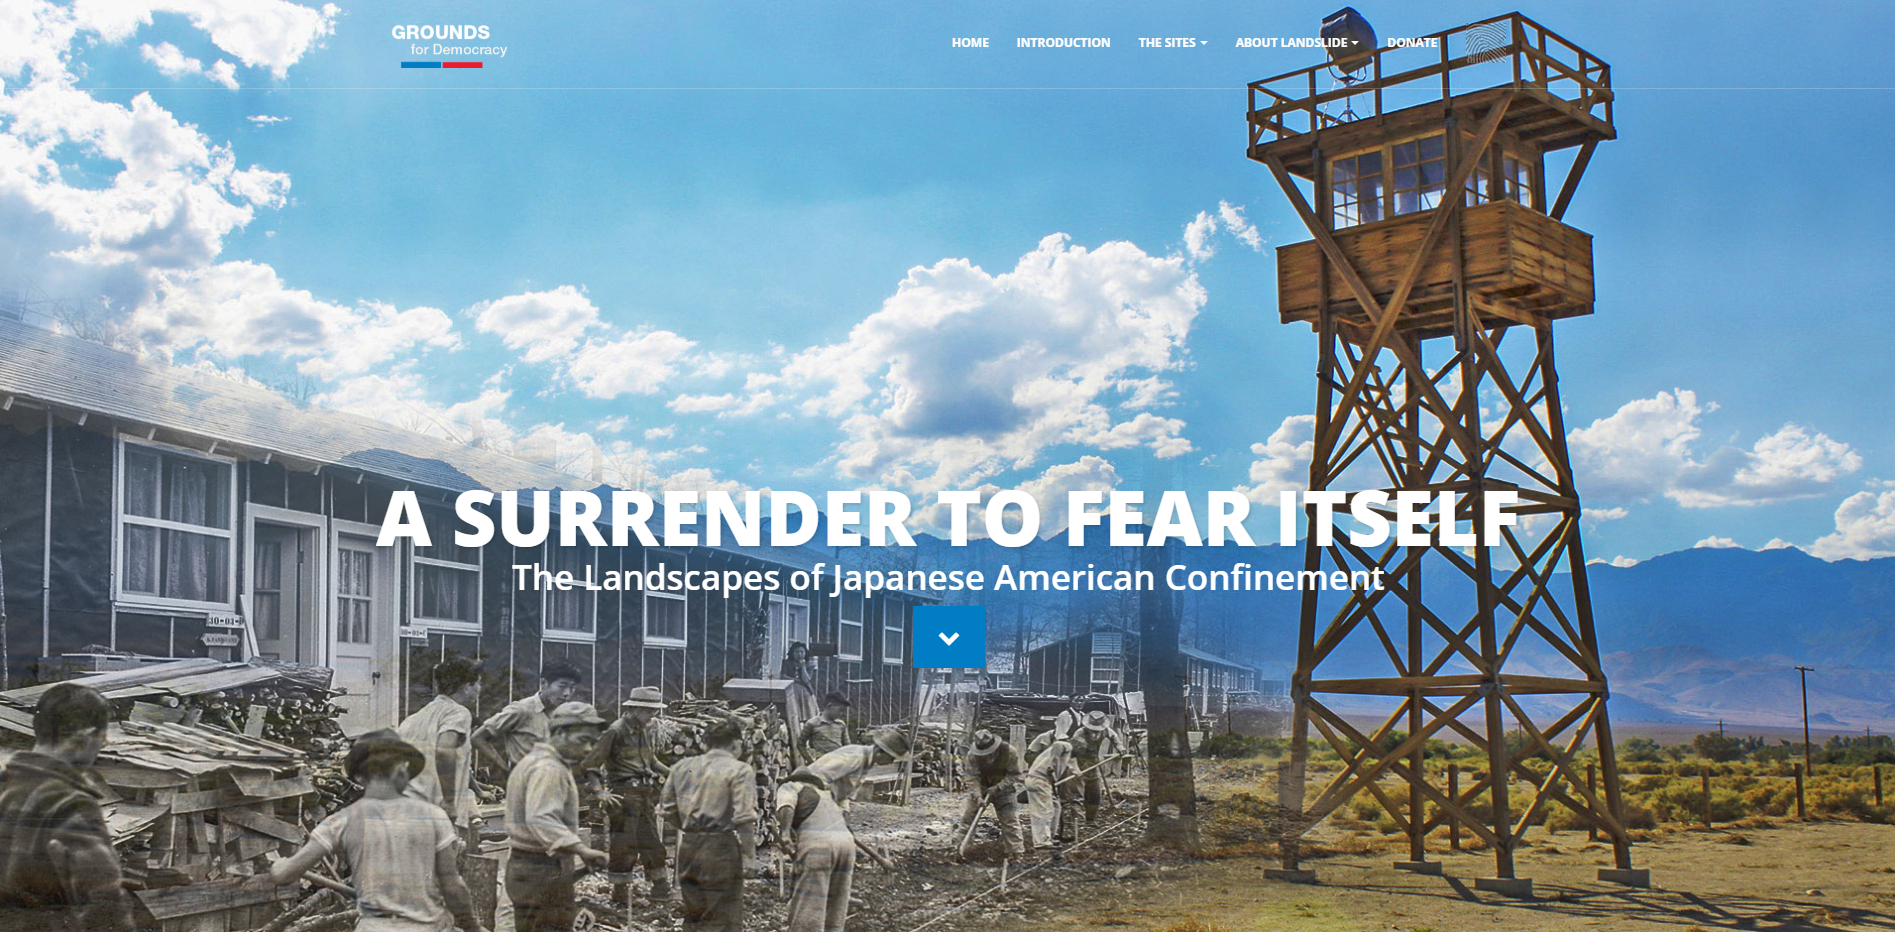 The Cultural Landscape Foundation Landscapes of Japanese American Confinement Landing Page